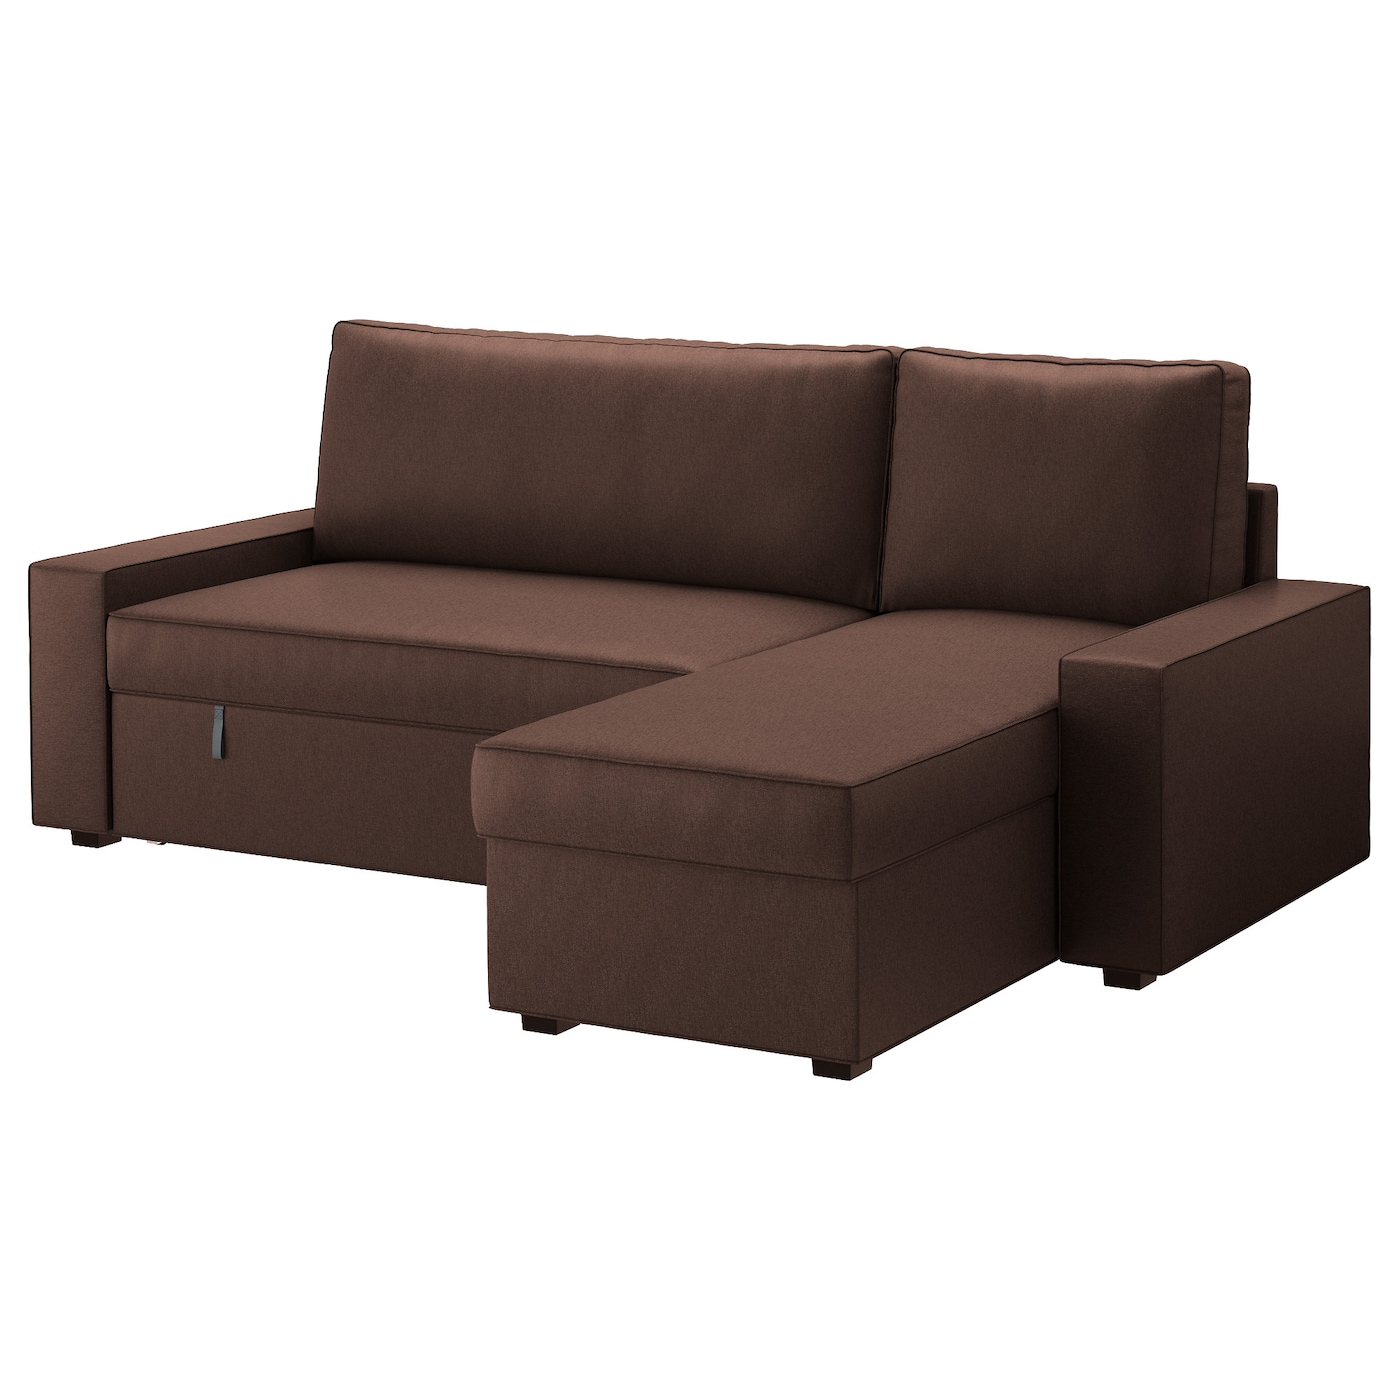 Vilasund sofa bed with chaise longue borred dark brown ikea for Couch und sofa fürth